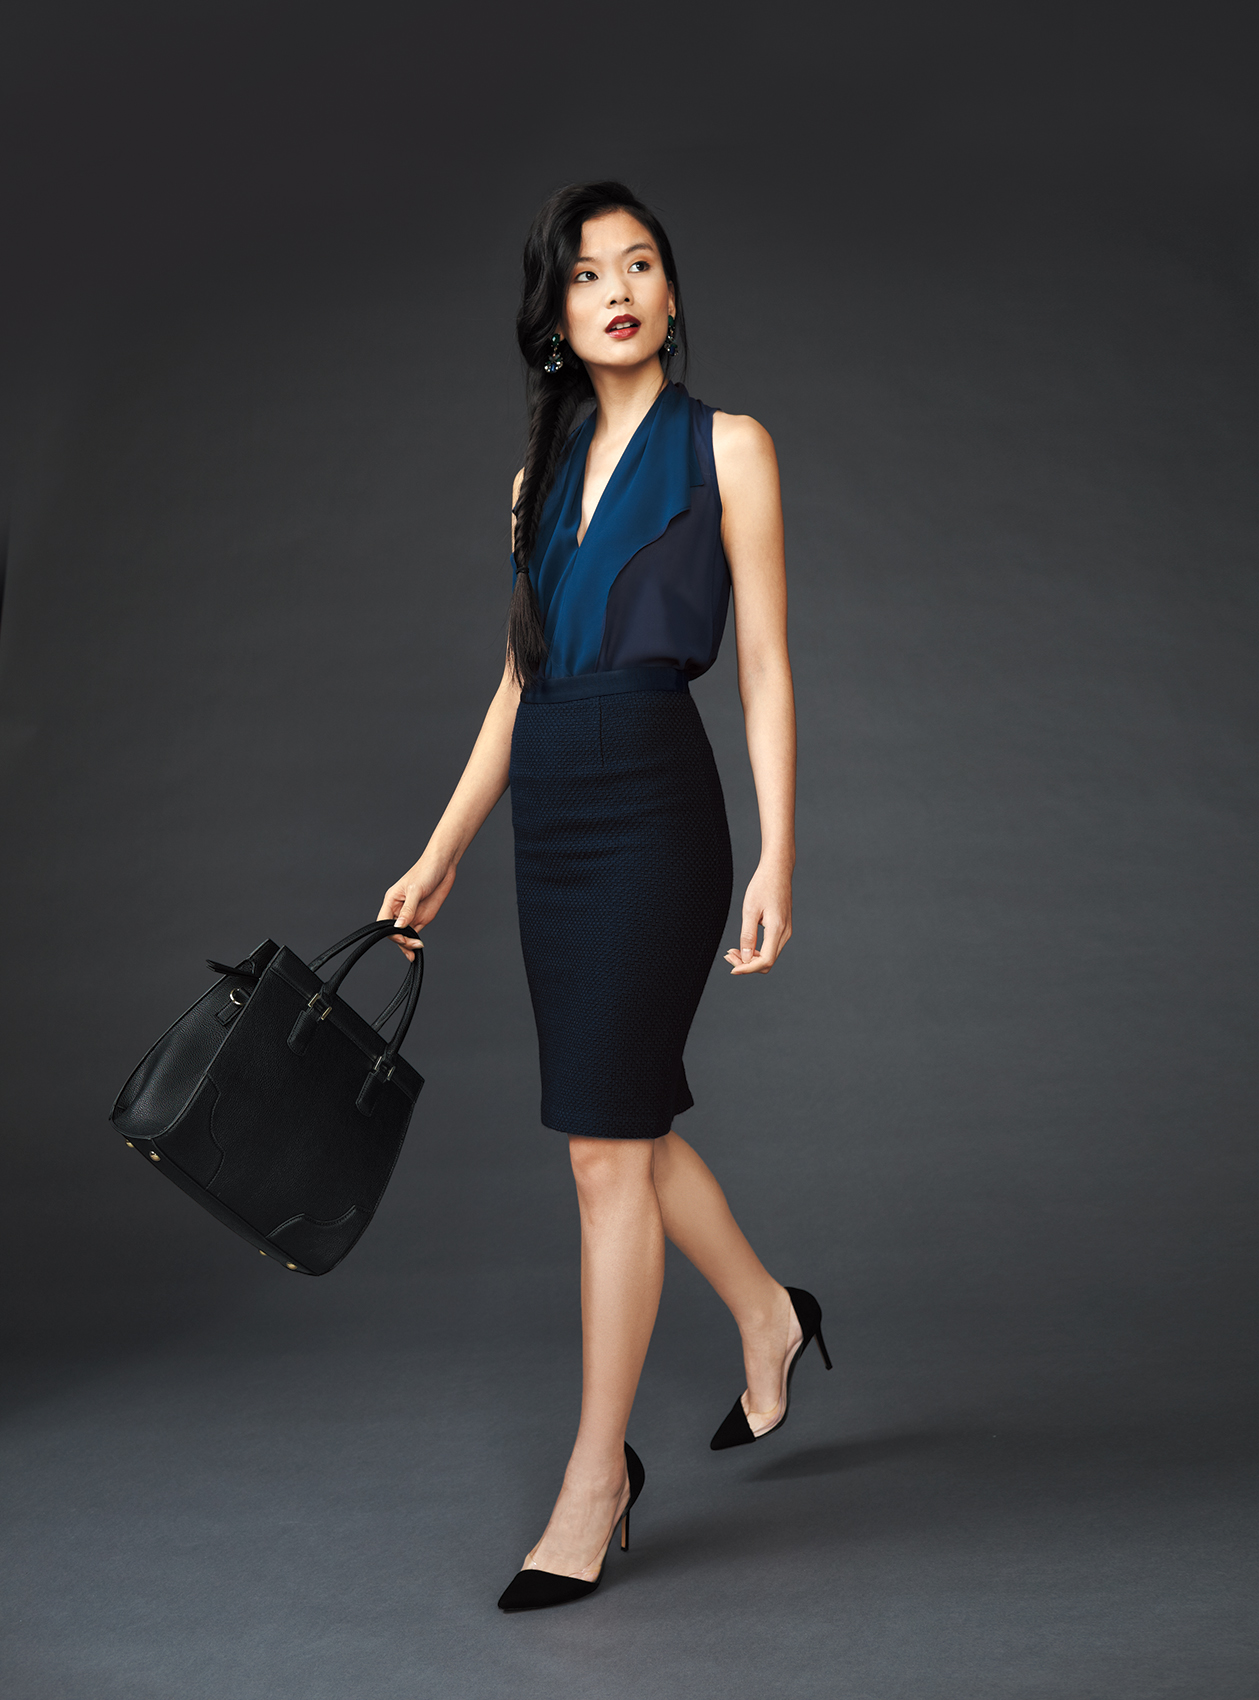 Woman in navy outfit with bag